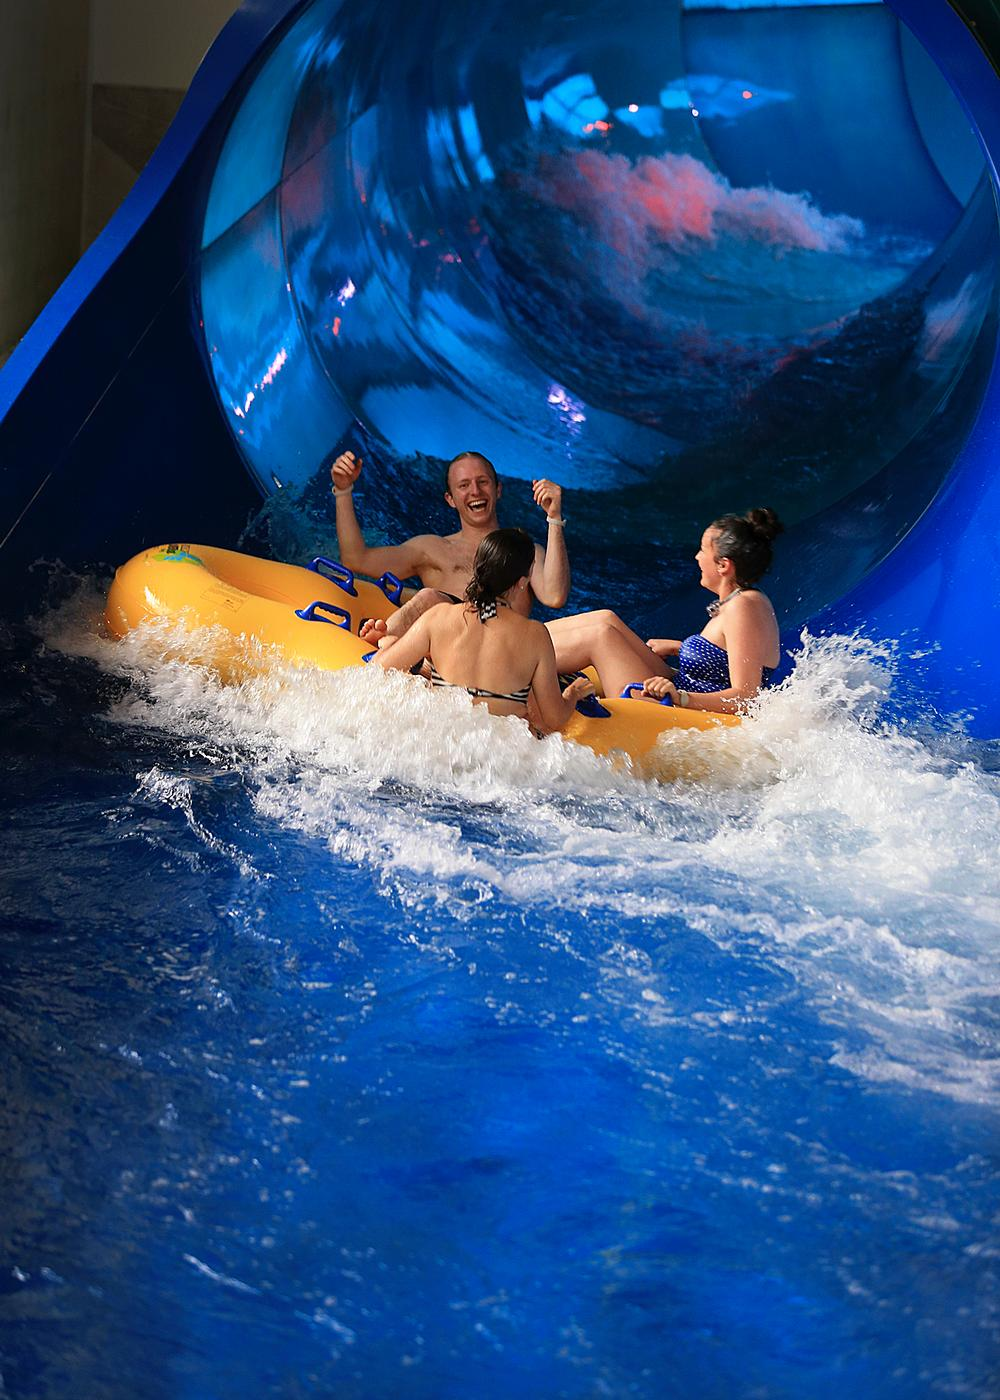 The Tornado is one of three new water rides